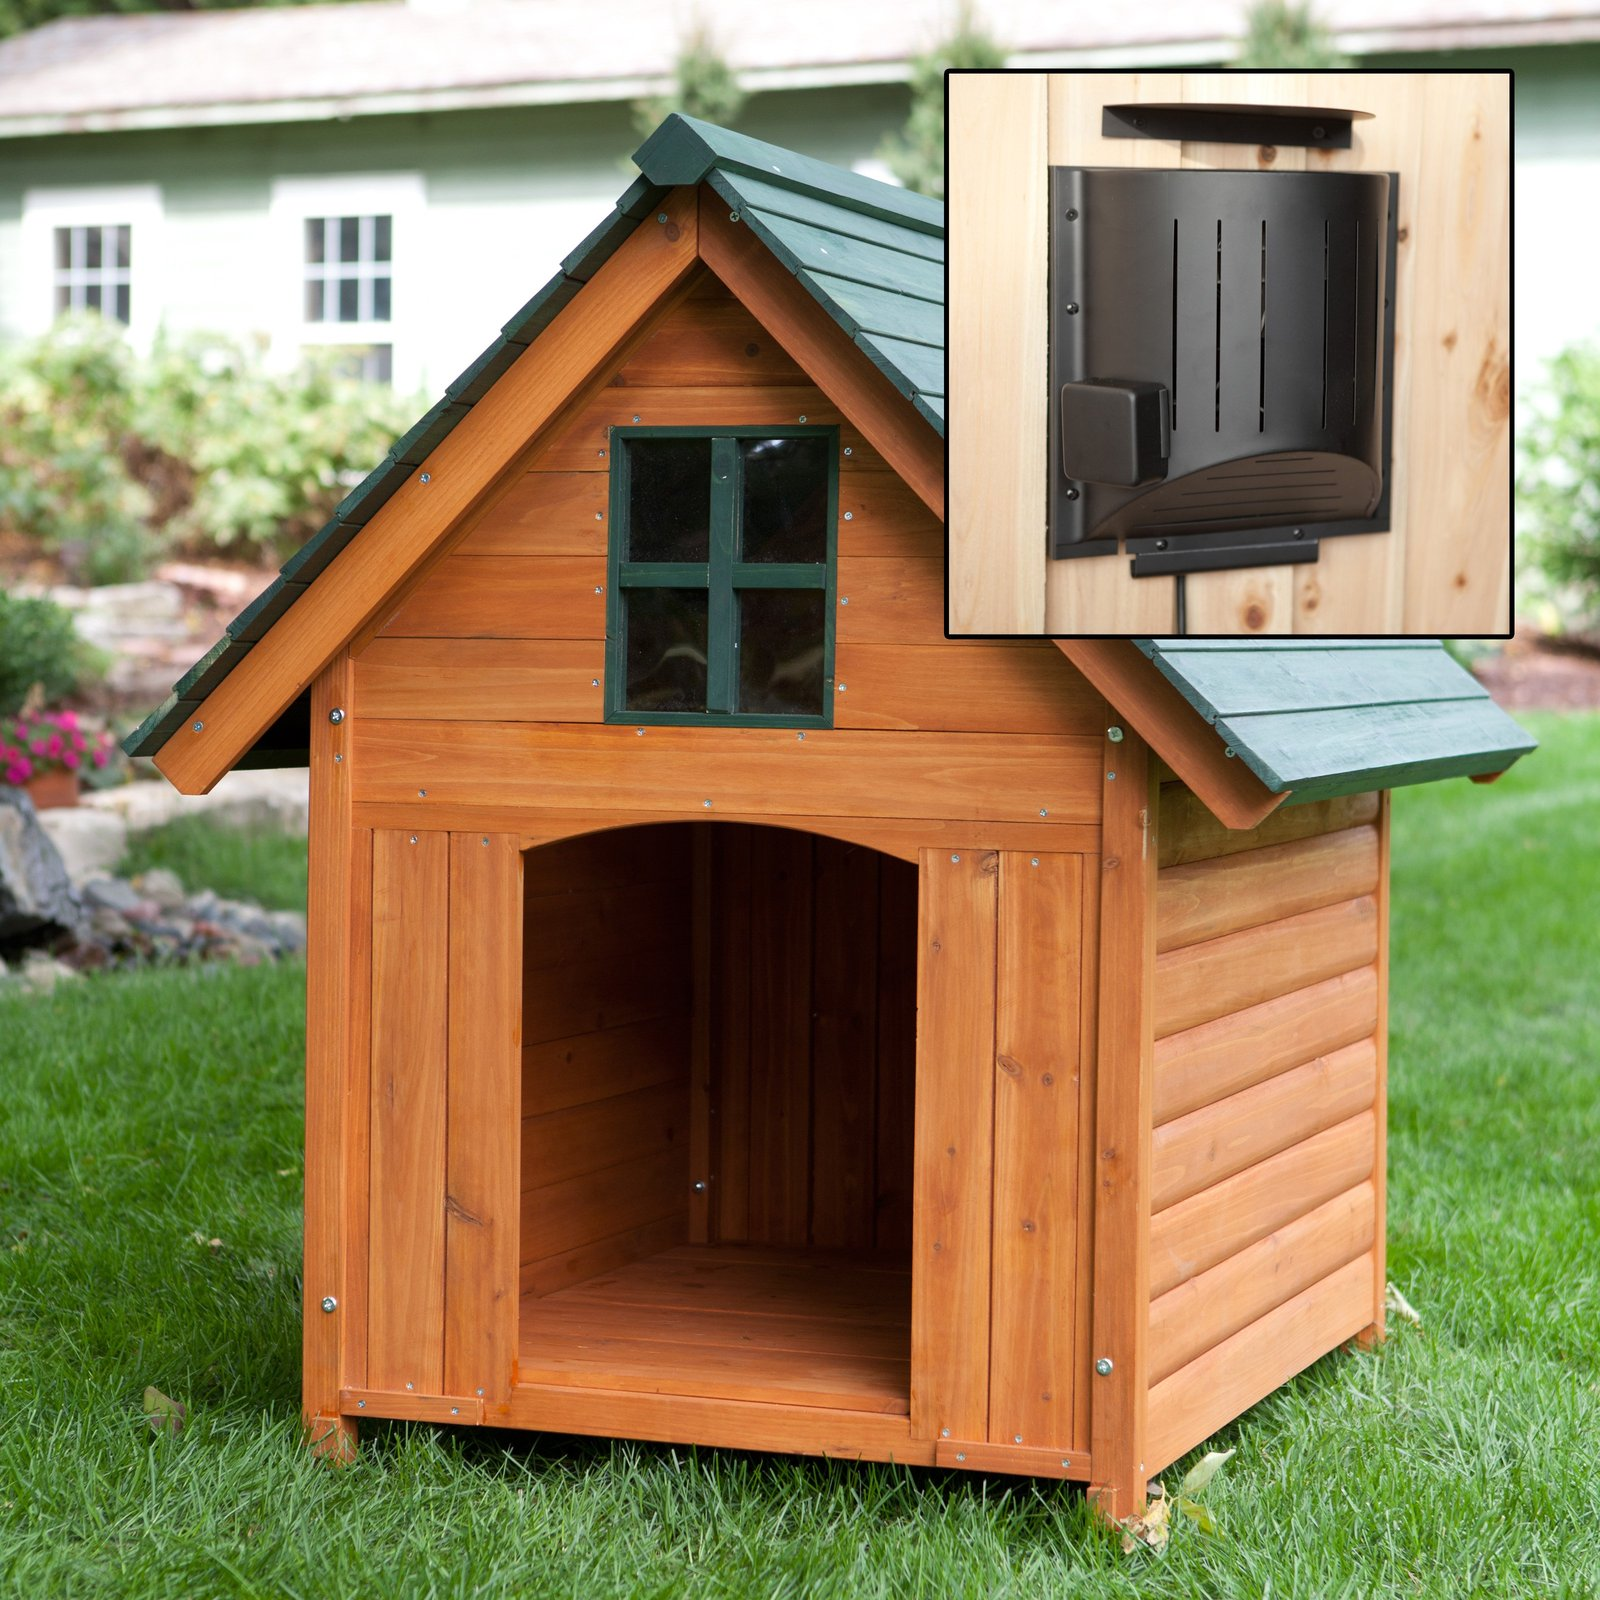 heated dog house large house heated pet kennel deluxe rustic wooden 10431